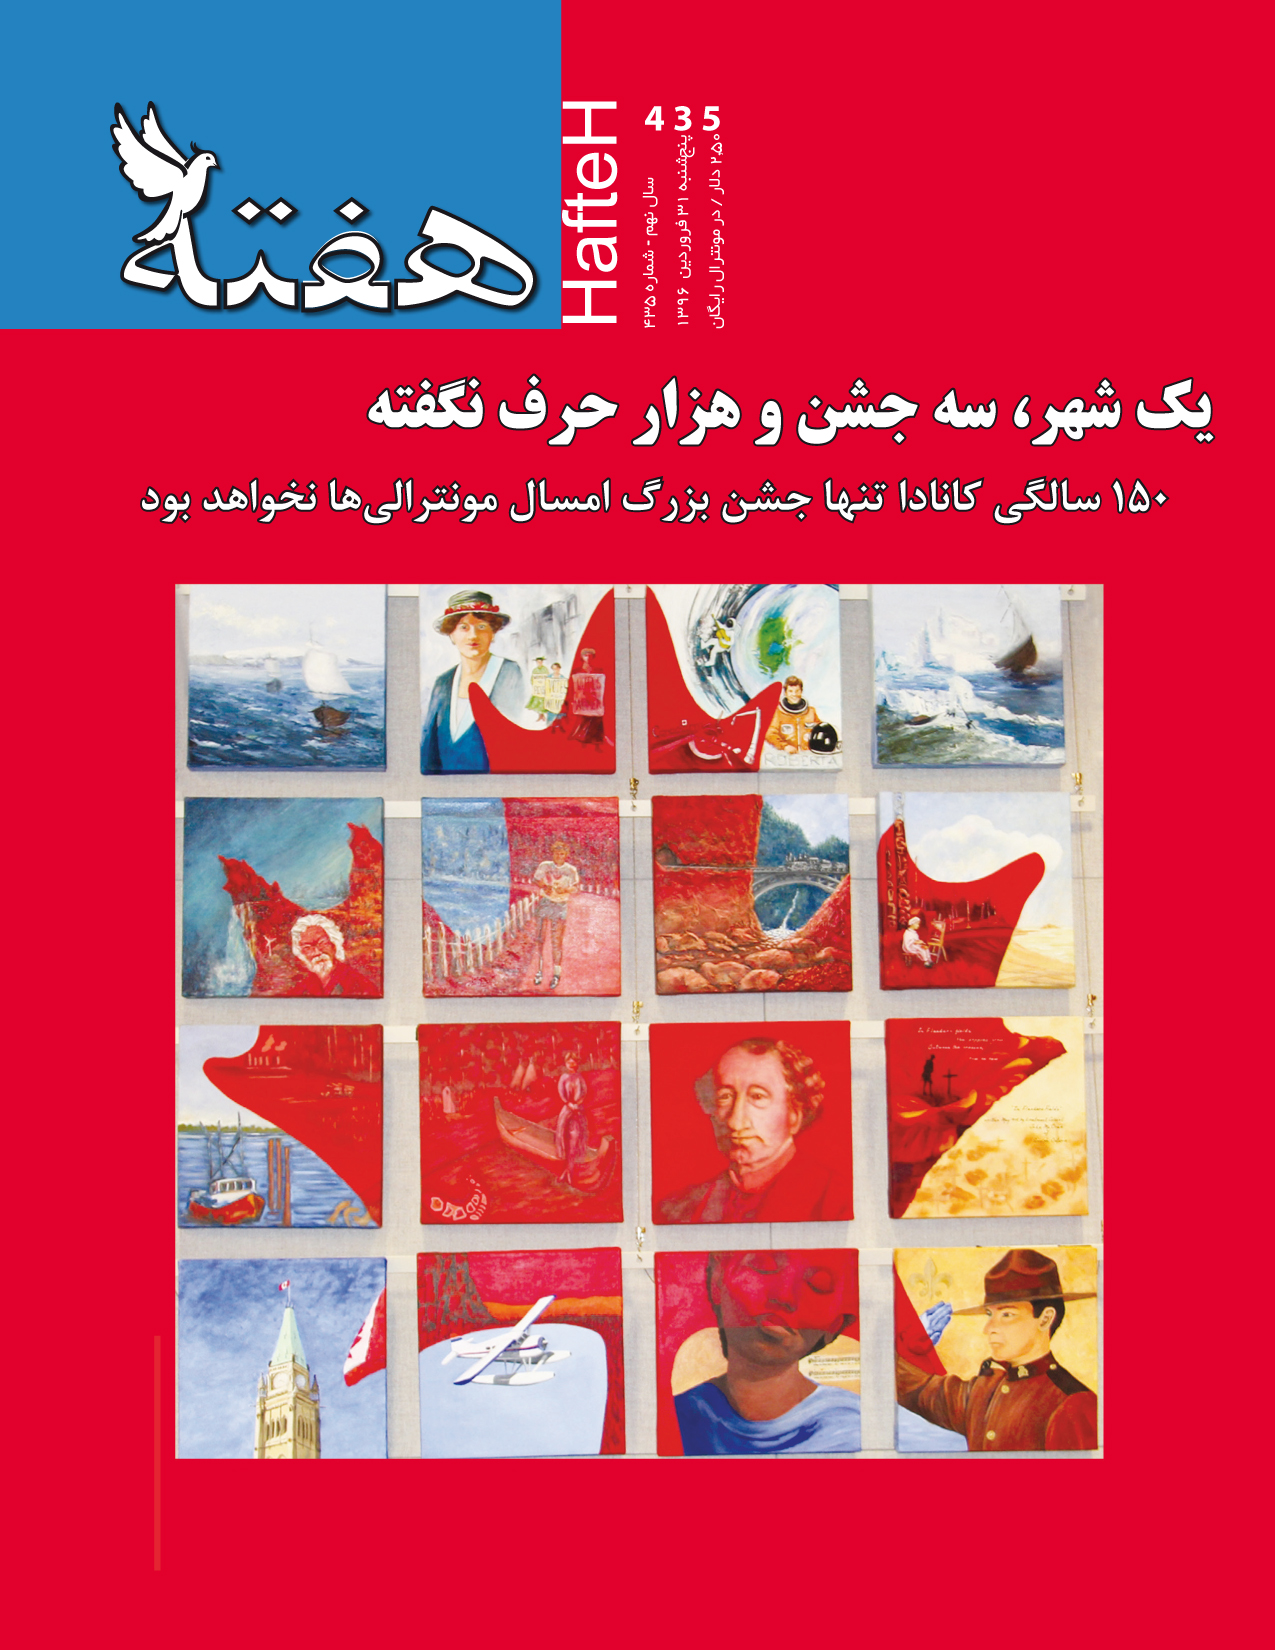 Hafteh - Issue Number: 435